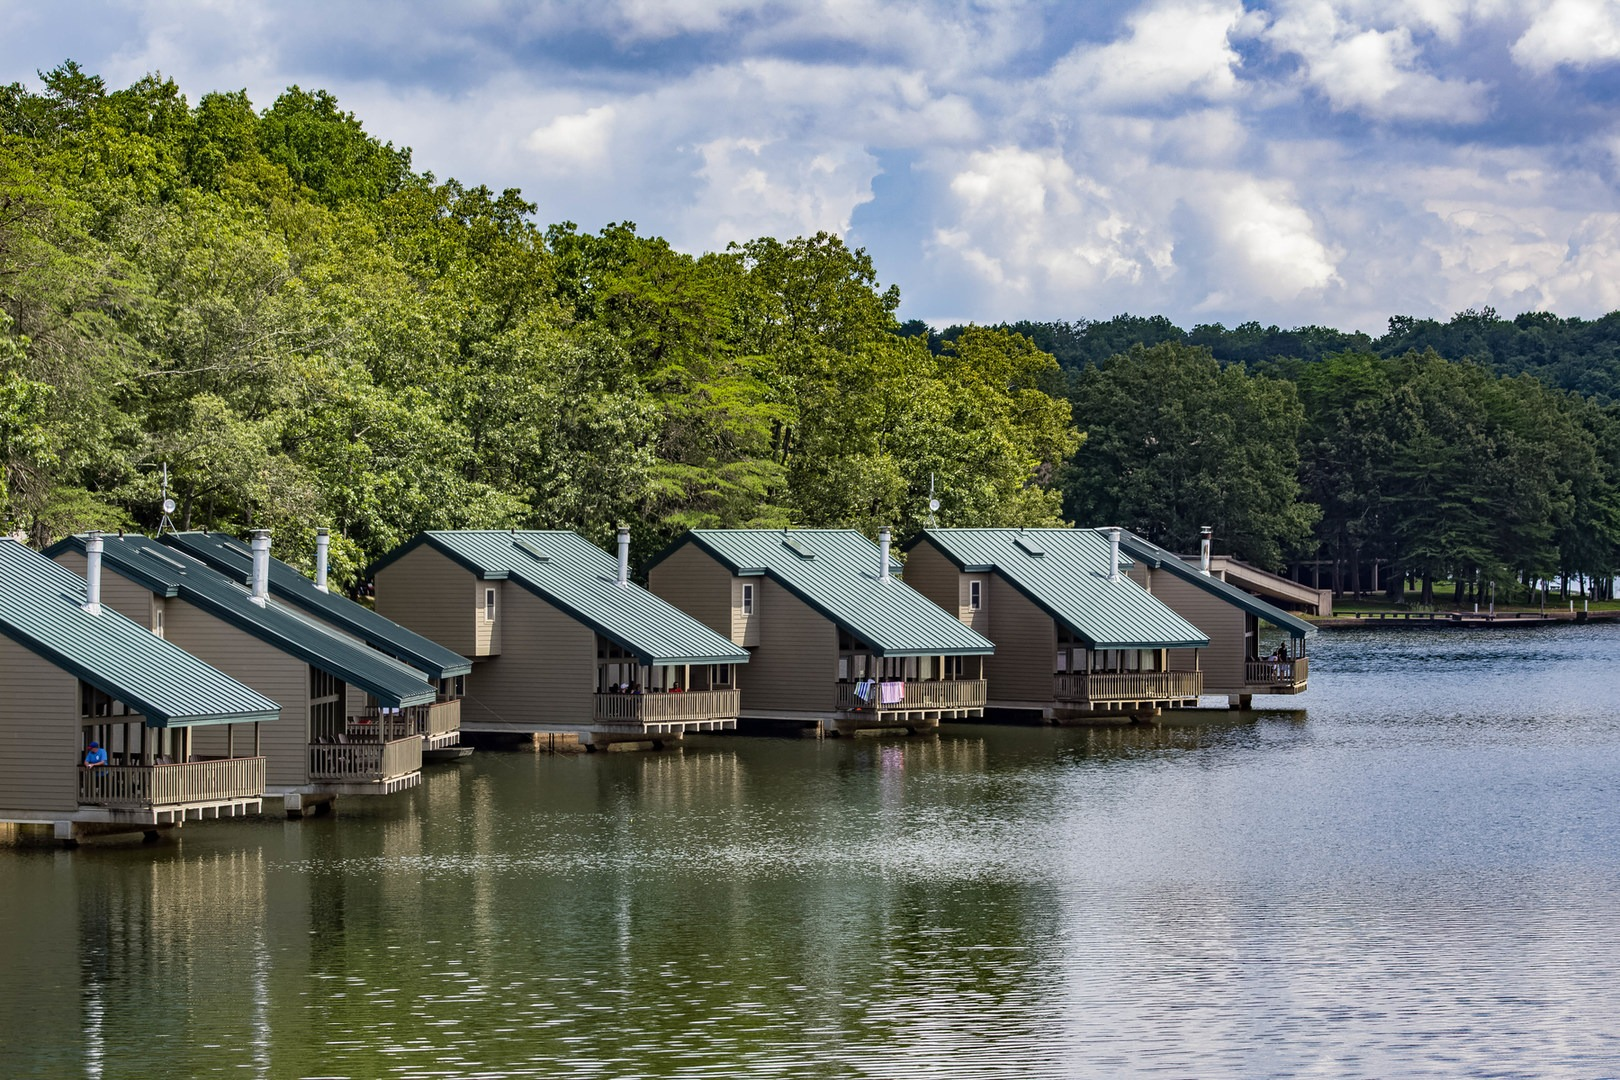 Charmant ... The Park Also Has Lakeside Cabins Available For Guests.  Fall Creek  Falls State Park ...